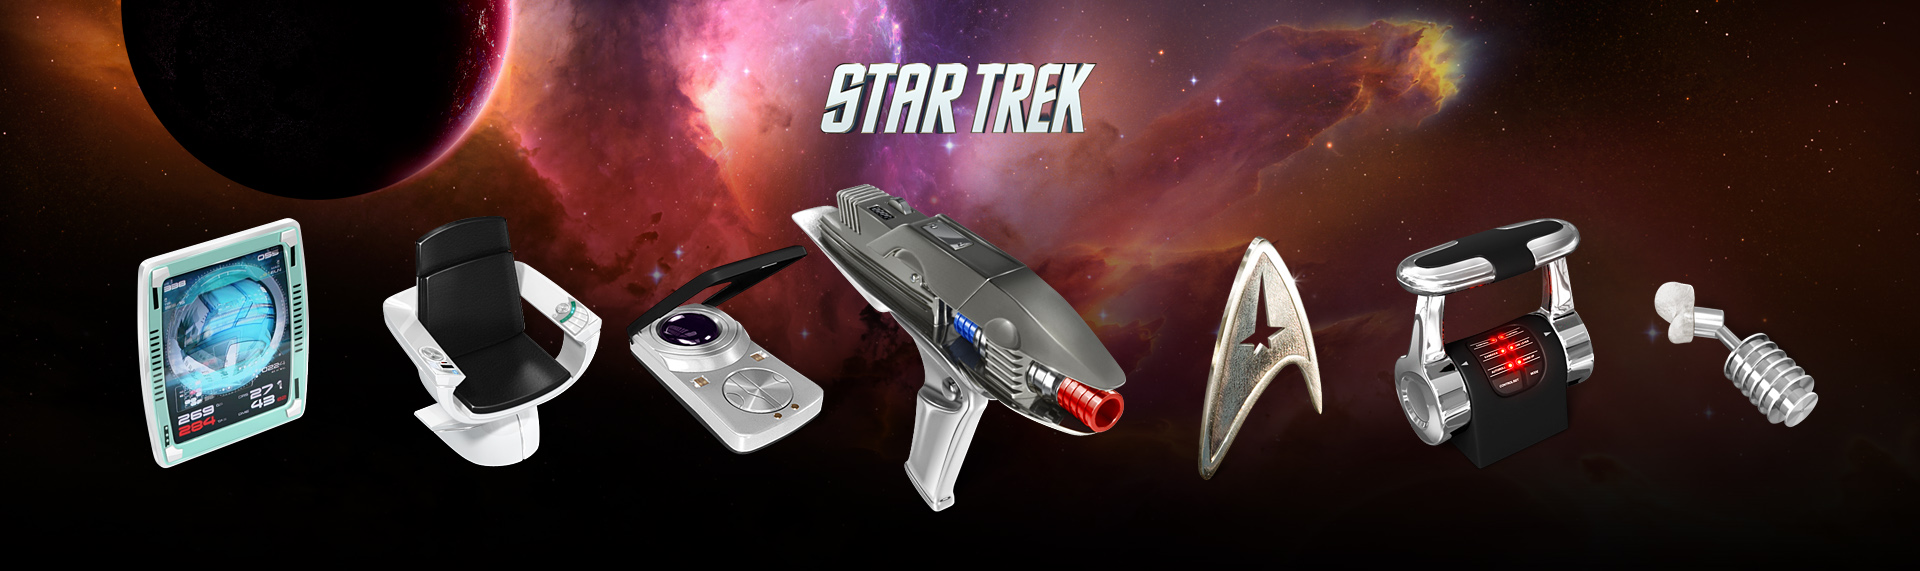 STAR TREX XI Sony PlayStation XMB Icons  Client: Under License from CBS Consumer Products  We loved the new STAR TREK movie so much, we designed a PlayStation 3 theme set for it. The official Star Trek XI movie-based Sony PS3 & PSP themes. Features custom wallpapers with the USS Enterprise with color & lighting FX by our design team, 3D modeled & rendered, iconic Star Trek icons for the XrossMediaBar (XMB), custom navigation icons & cursors. 2009 PPC. TM & CBS. All Rights Reserved. This theme is unfortunately no longer available... blame it on the Klingon Empire.